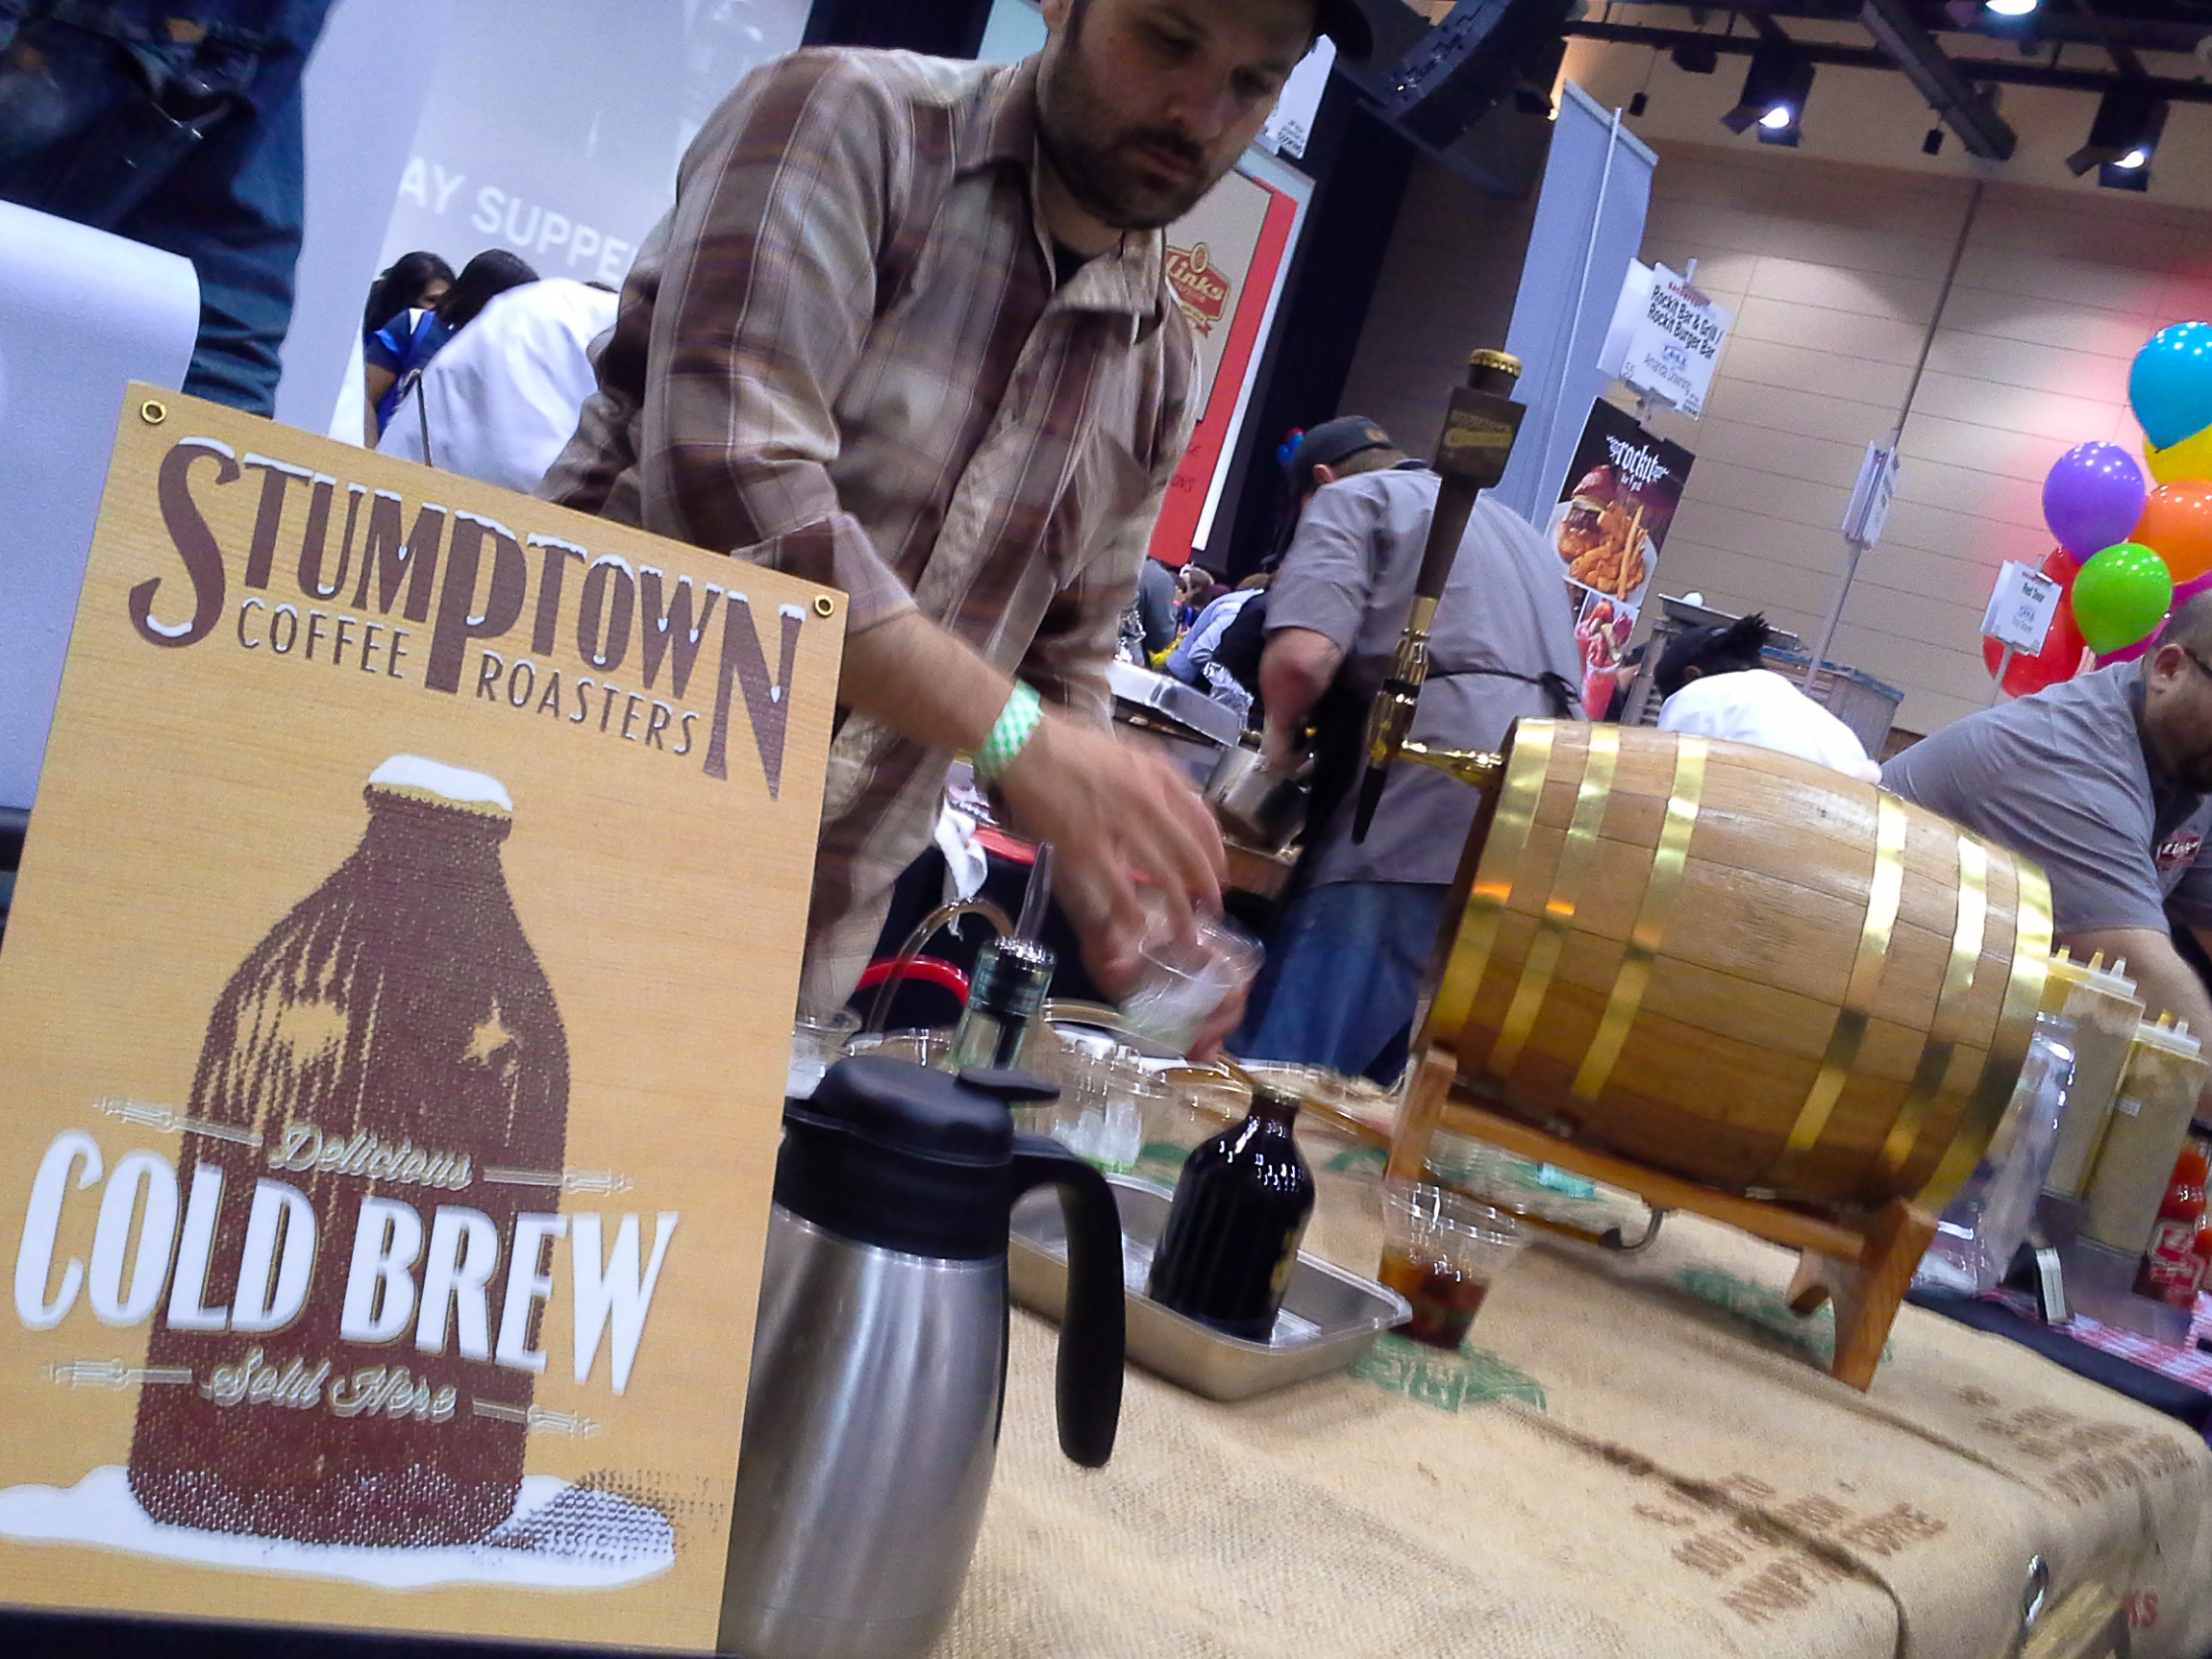 StumptownColdBrew-Coffee-20140426